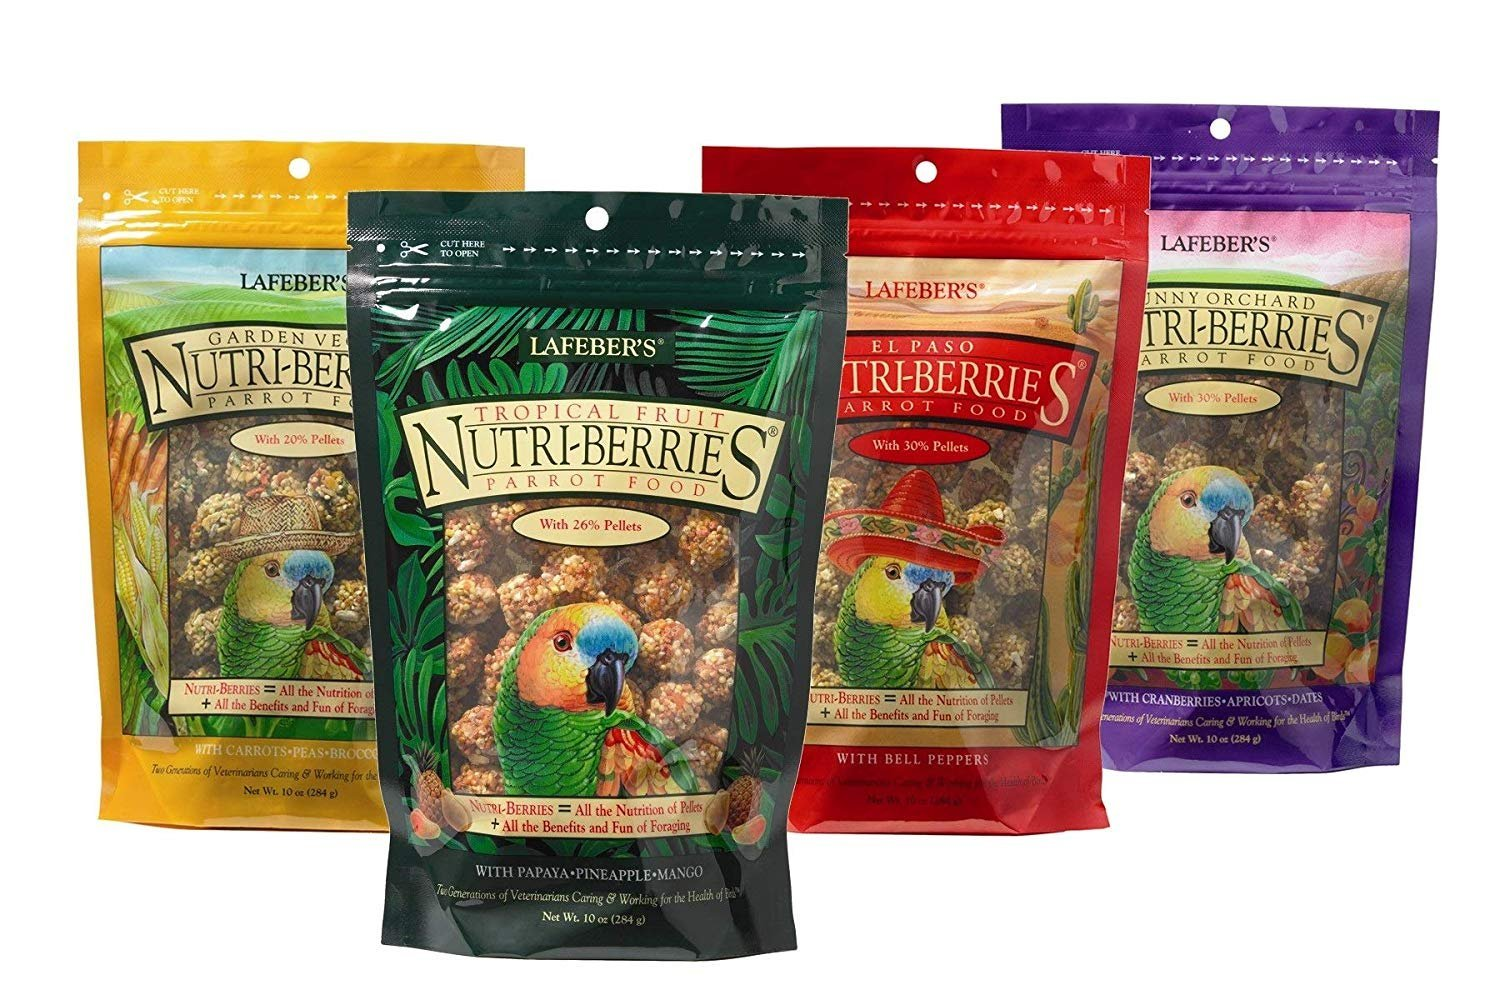 LAFEBER'S Nutri-Berries Pet Bird Food Bundle with Tropical Fruit, El Paso, Sunny Orchard, and Garden Veggie for Parrots, 10 oz Each (4 Items)